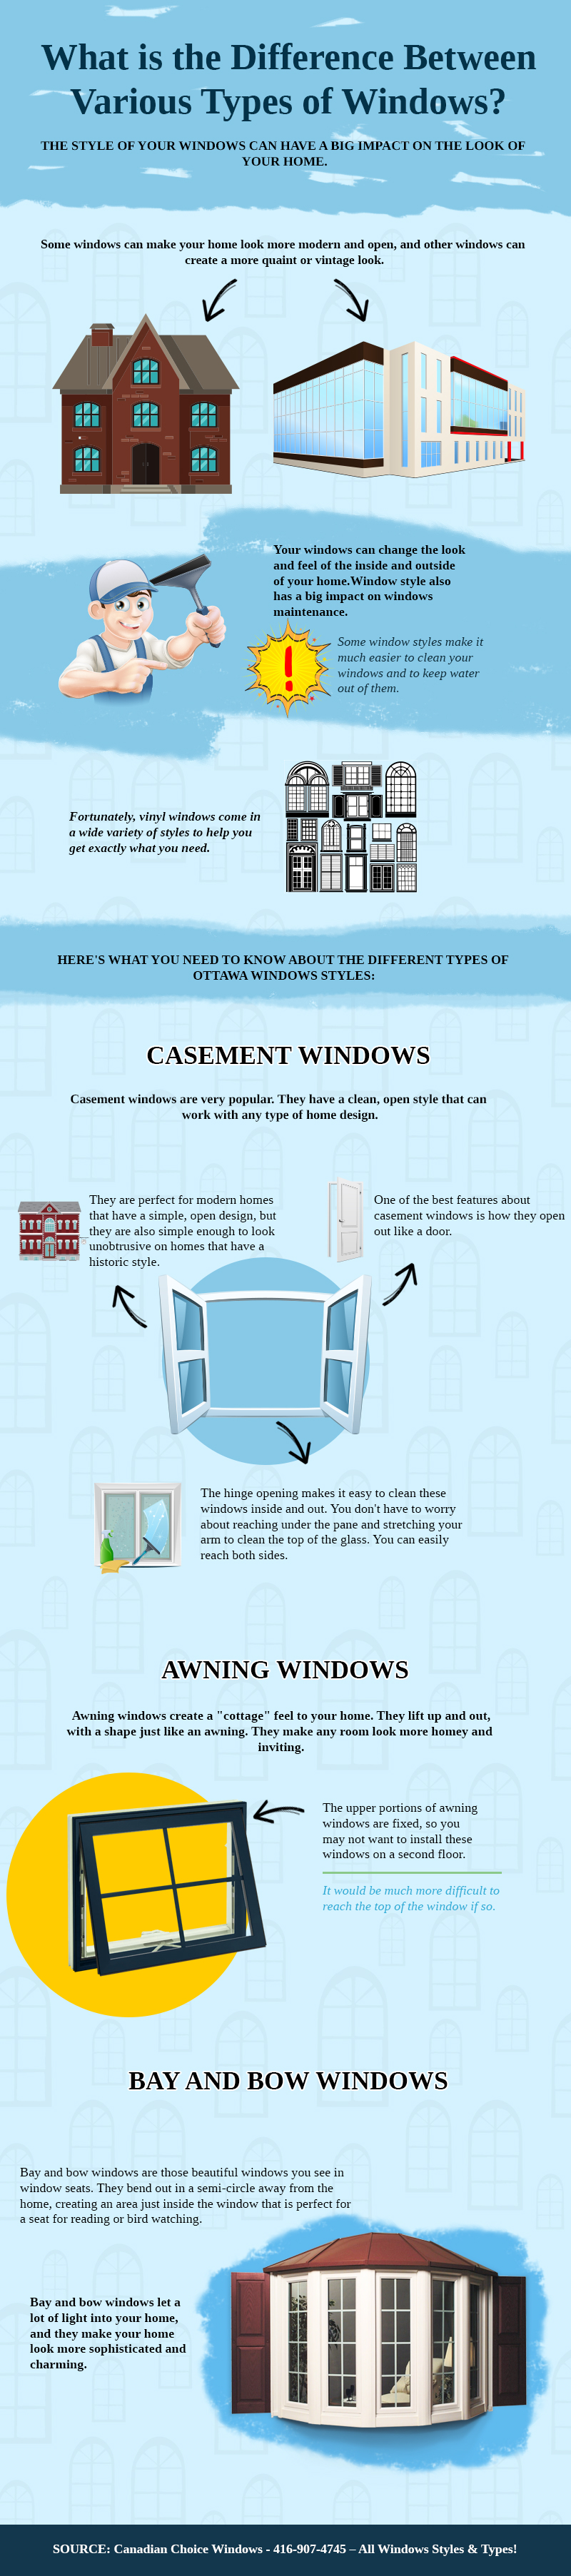 What is the Difference Between Various Types of Windows?